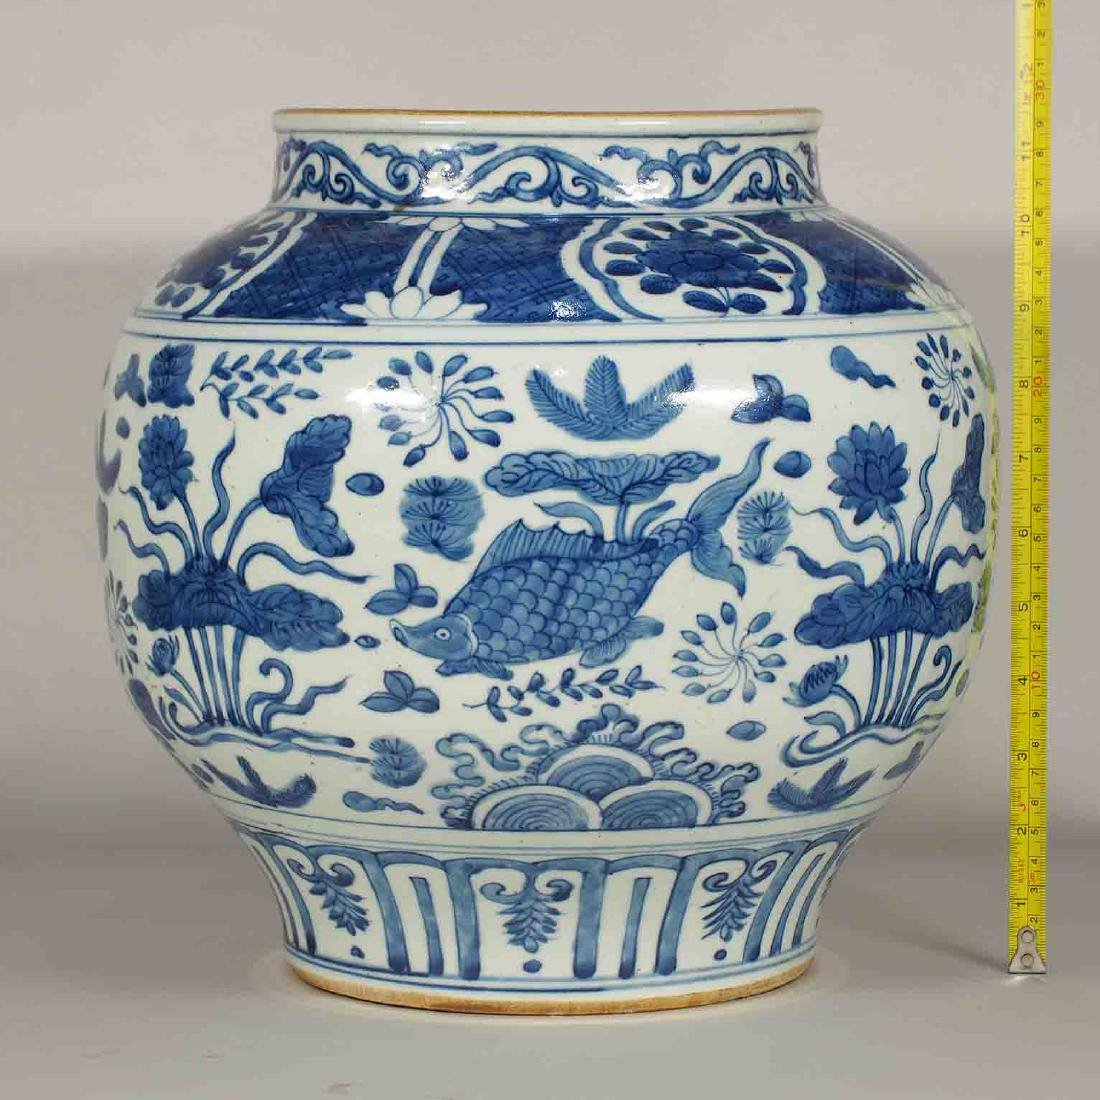 Jar with Fishes in a Pond Design, Wanli, Ming Dynasty - 9